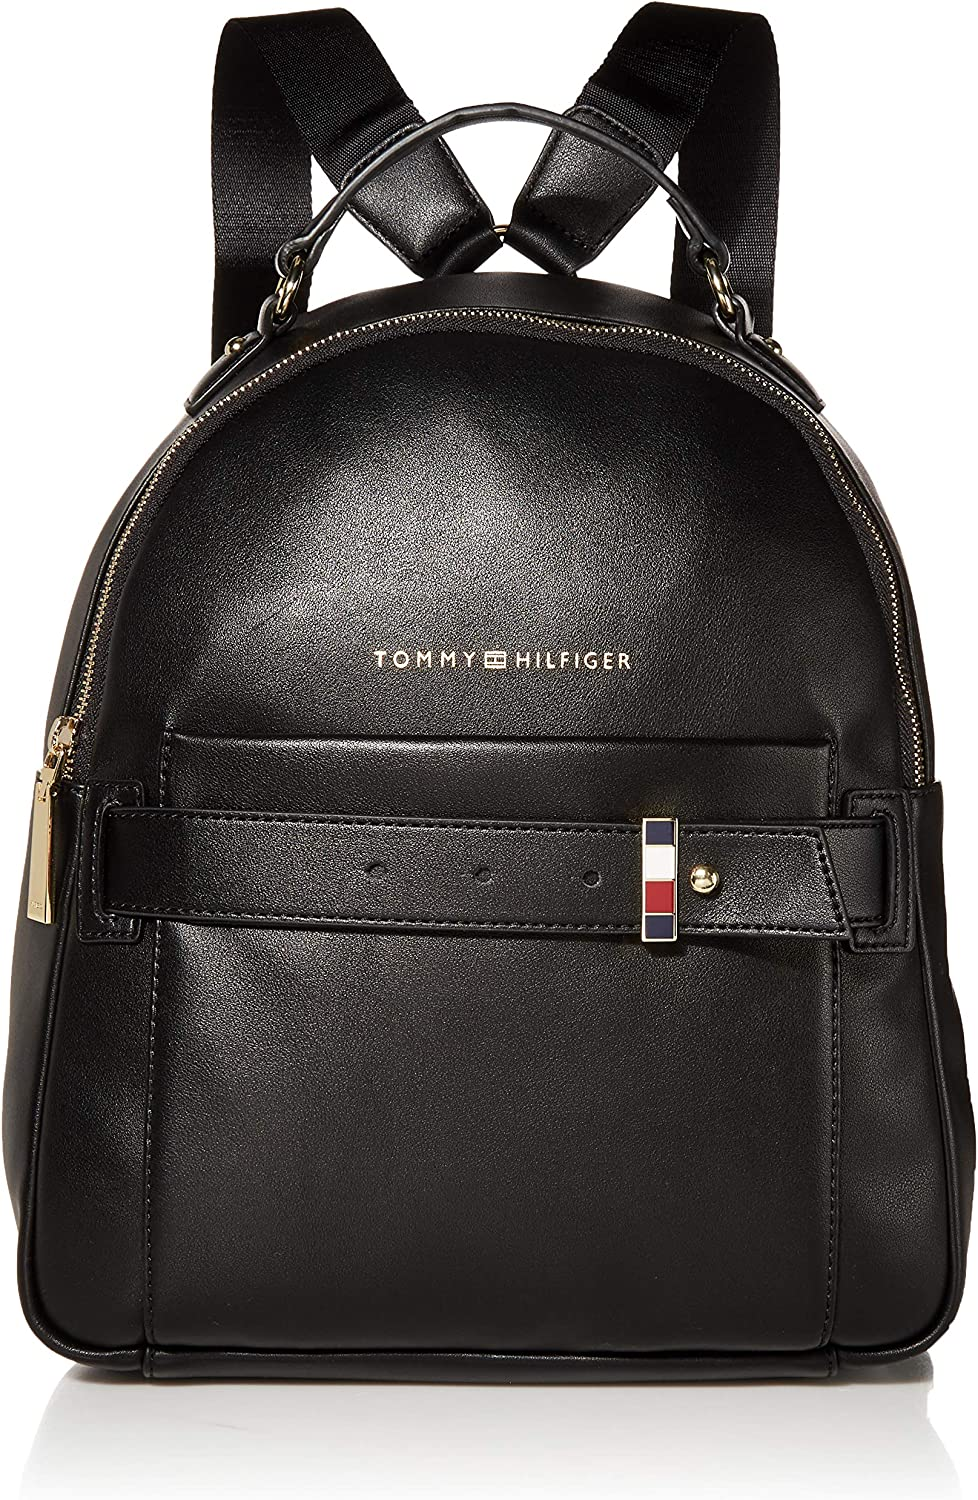 Tommy Hilfiger Emilia Dome Backpack